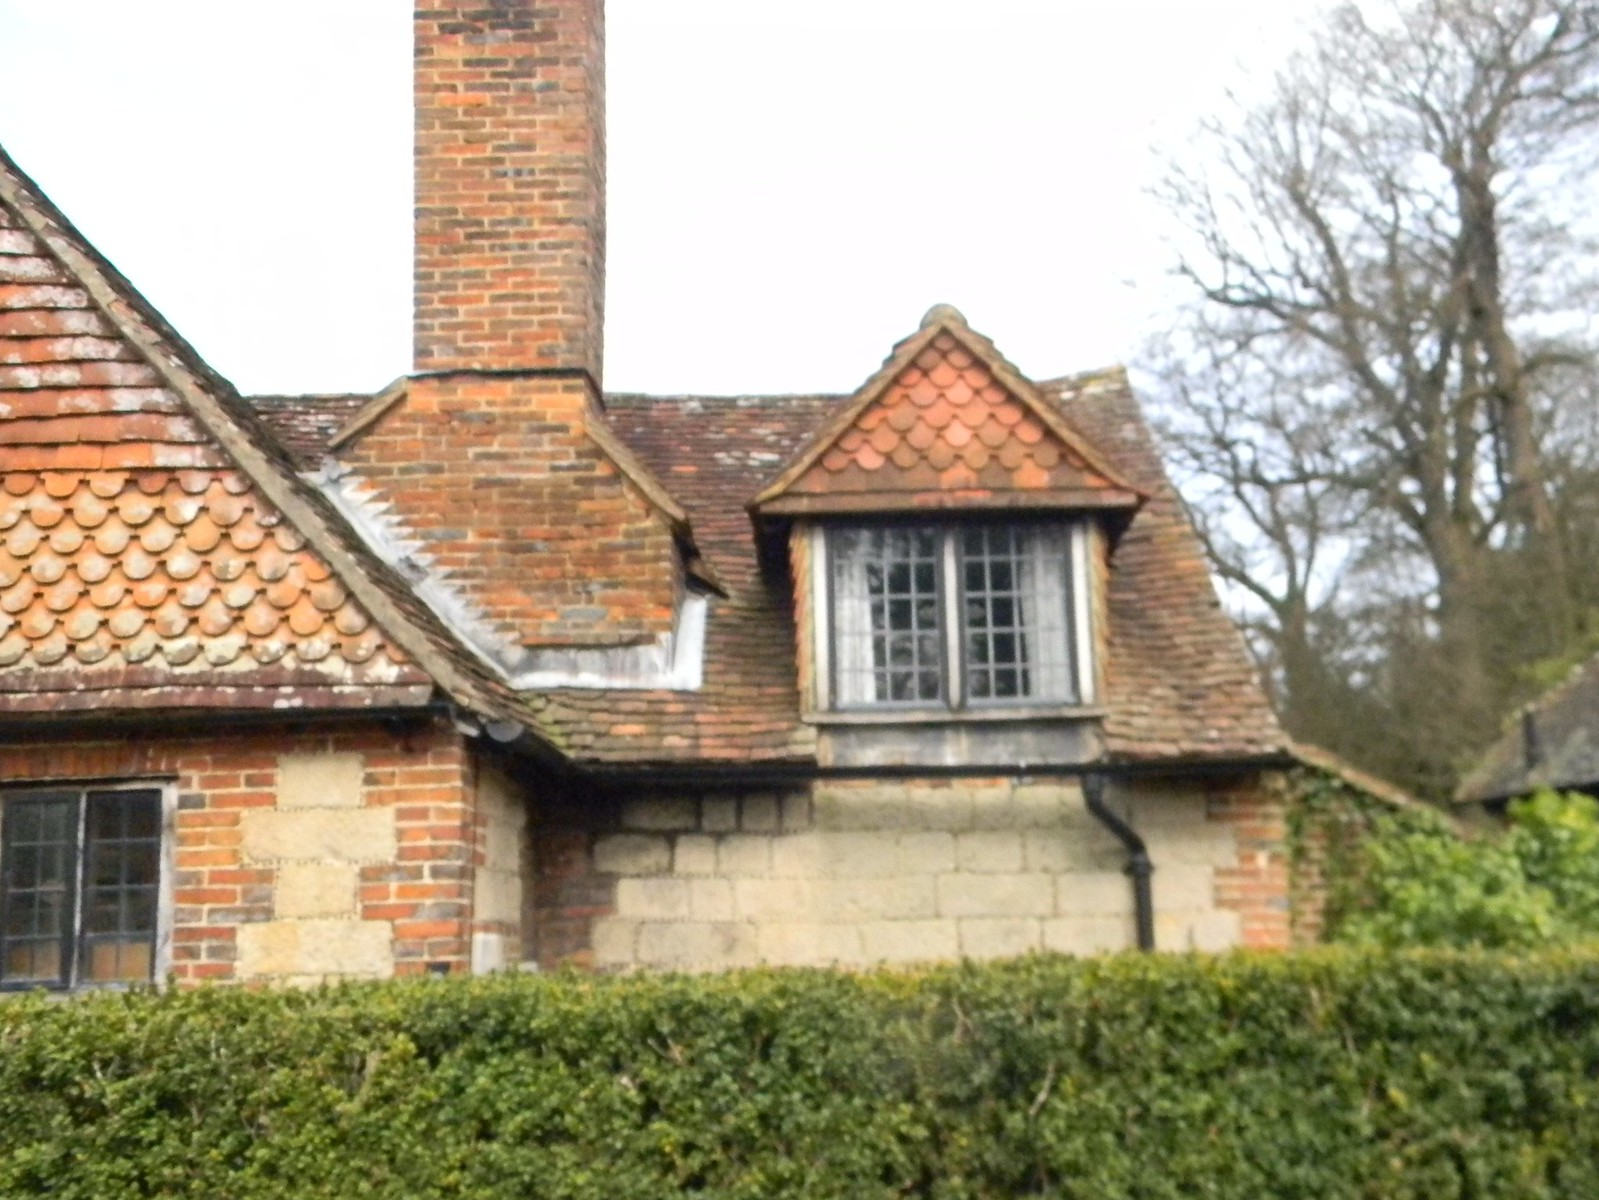 Old House near Enton Mill Milford to Godalming